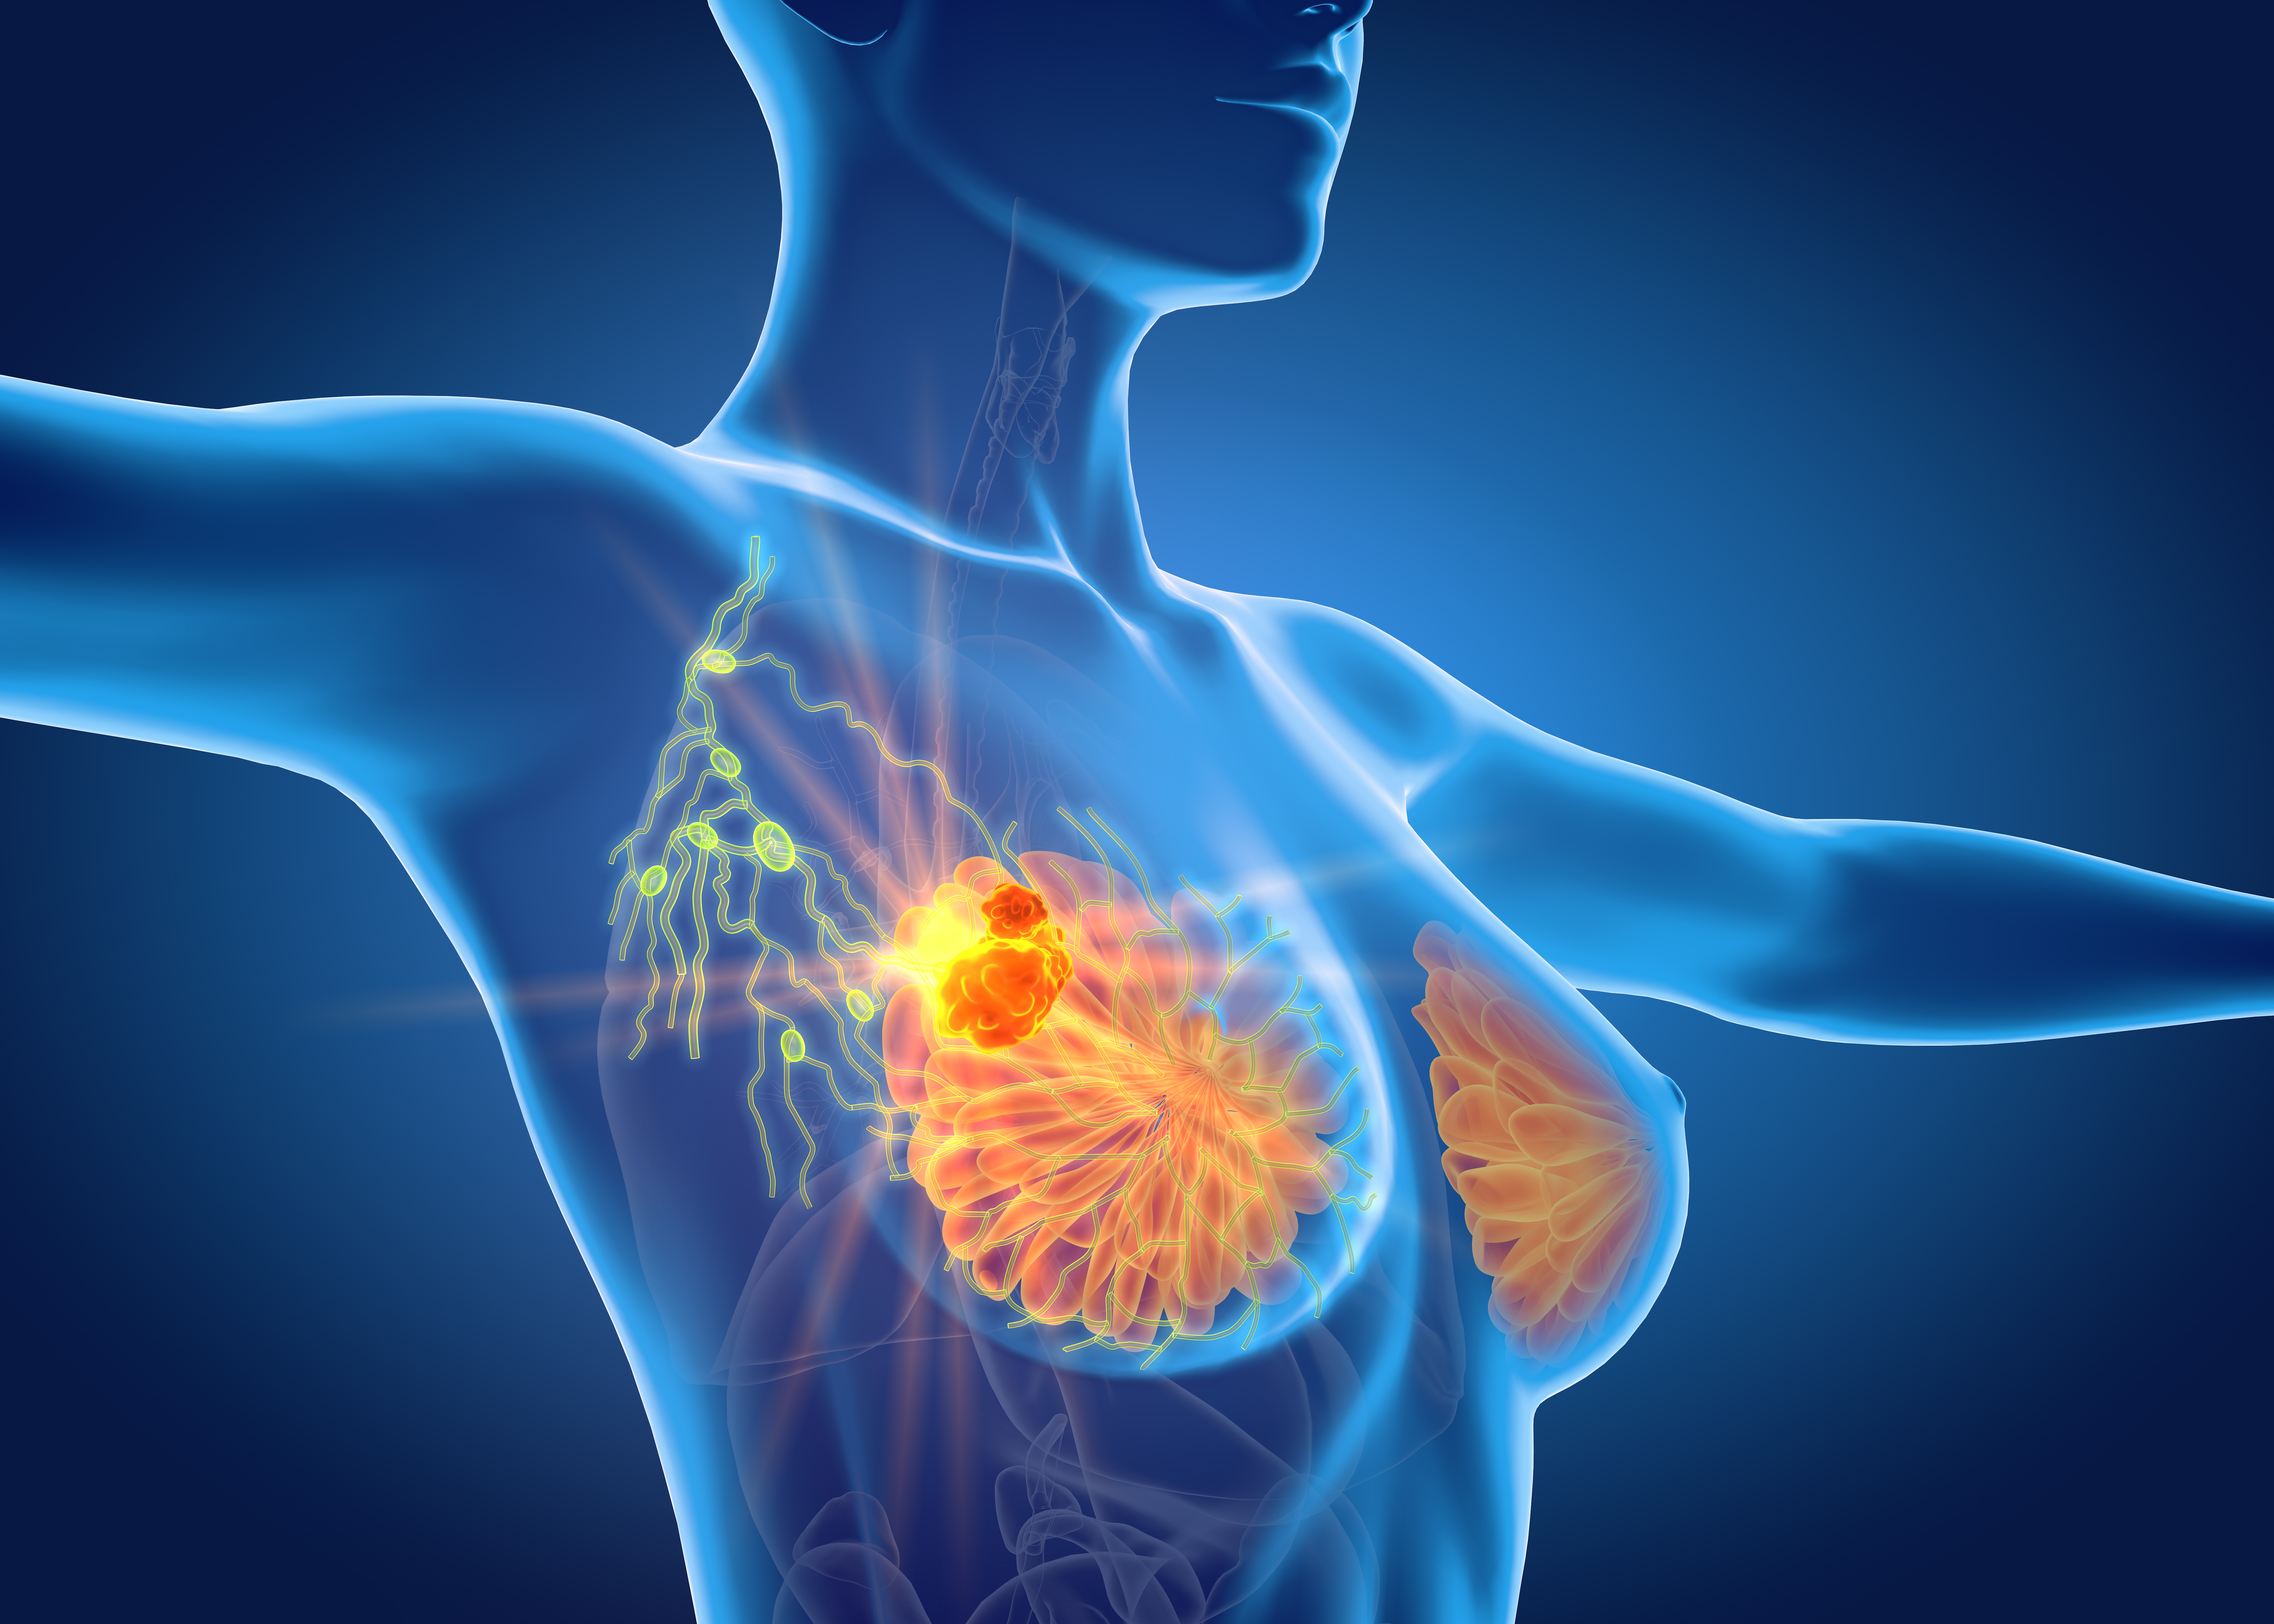 Updated Study Data Shows Oral Paclitaxel and Encequidar Is Beneficial in Patients with Metastatic Breast Cancer